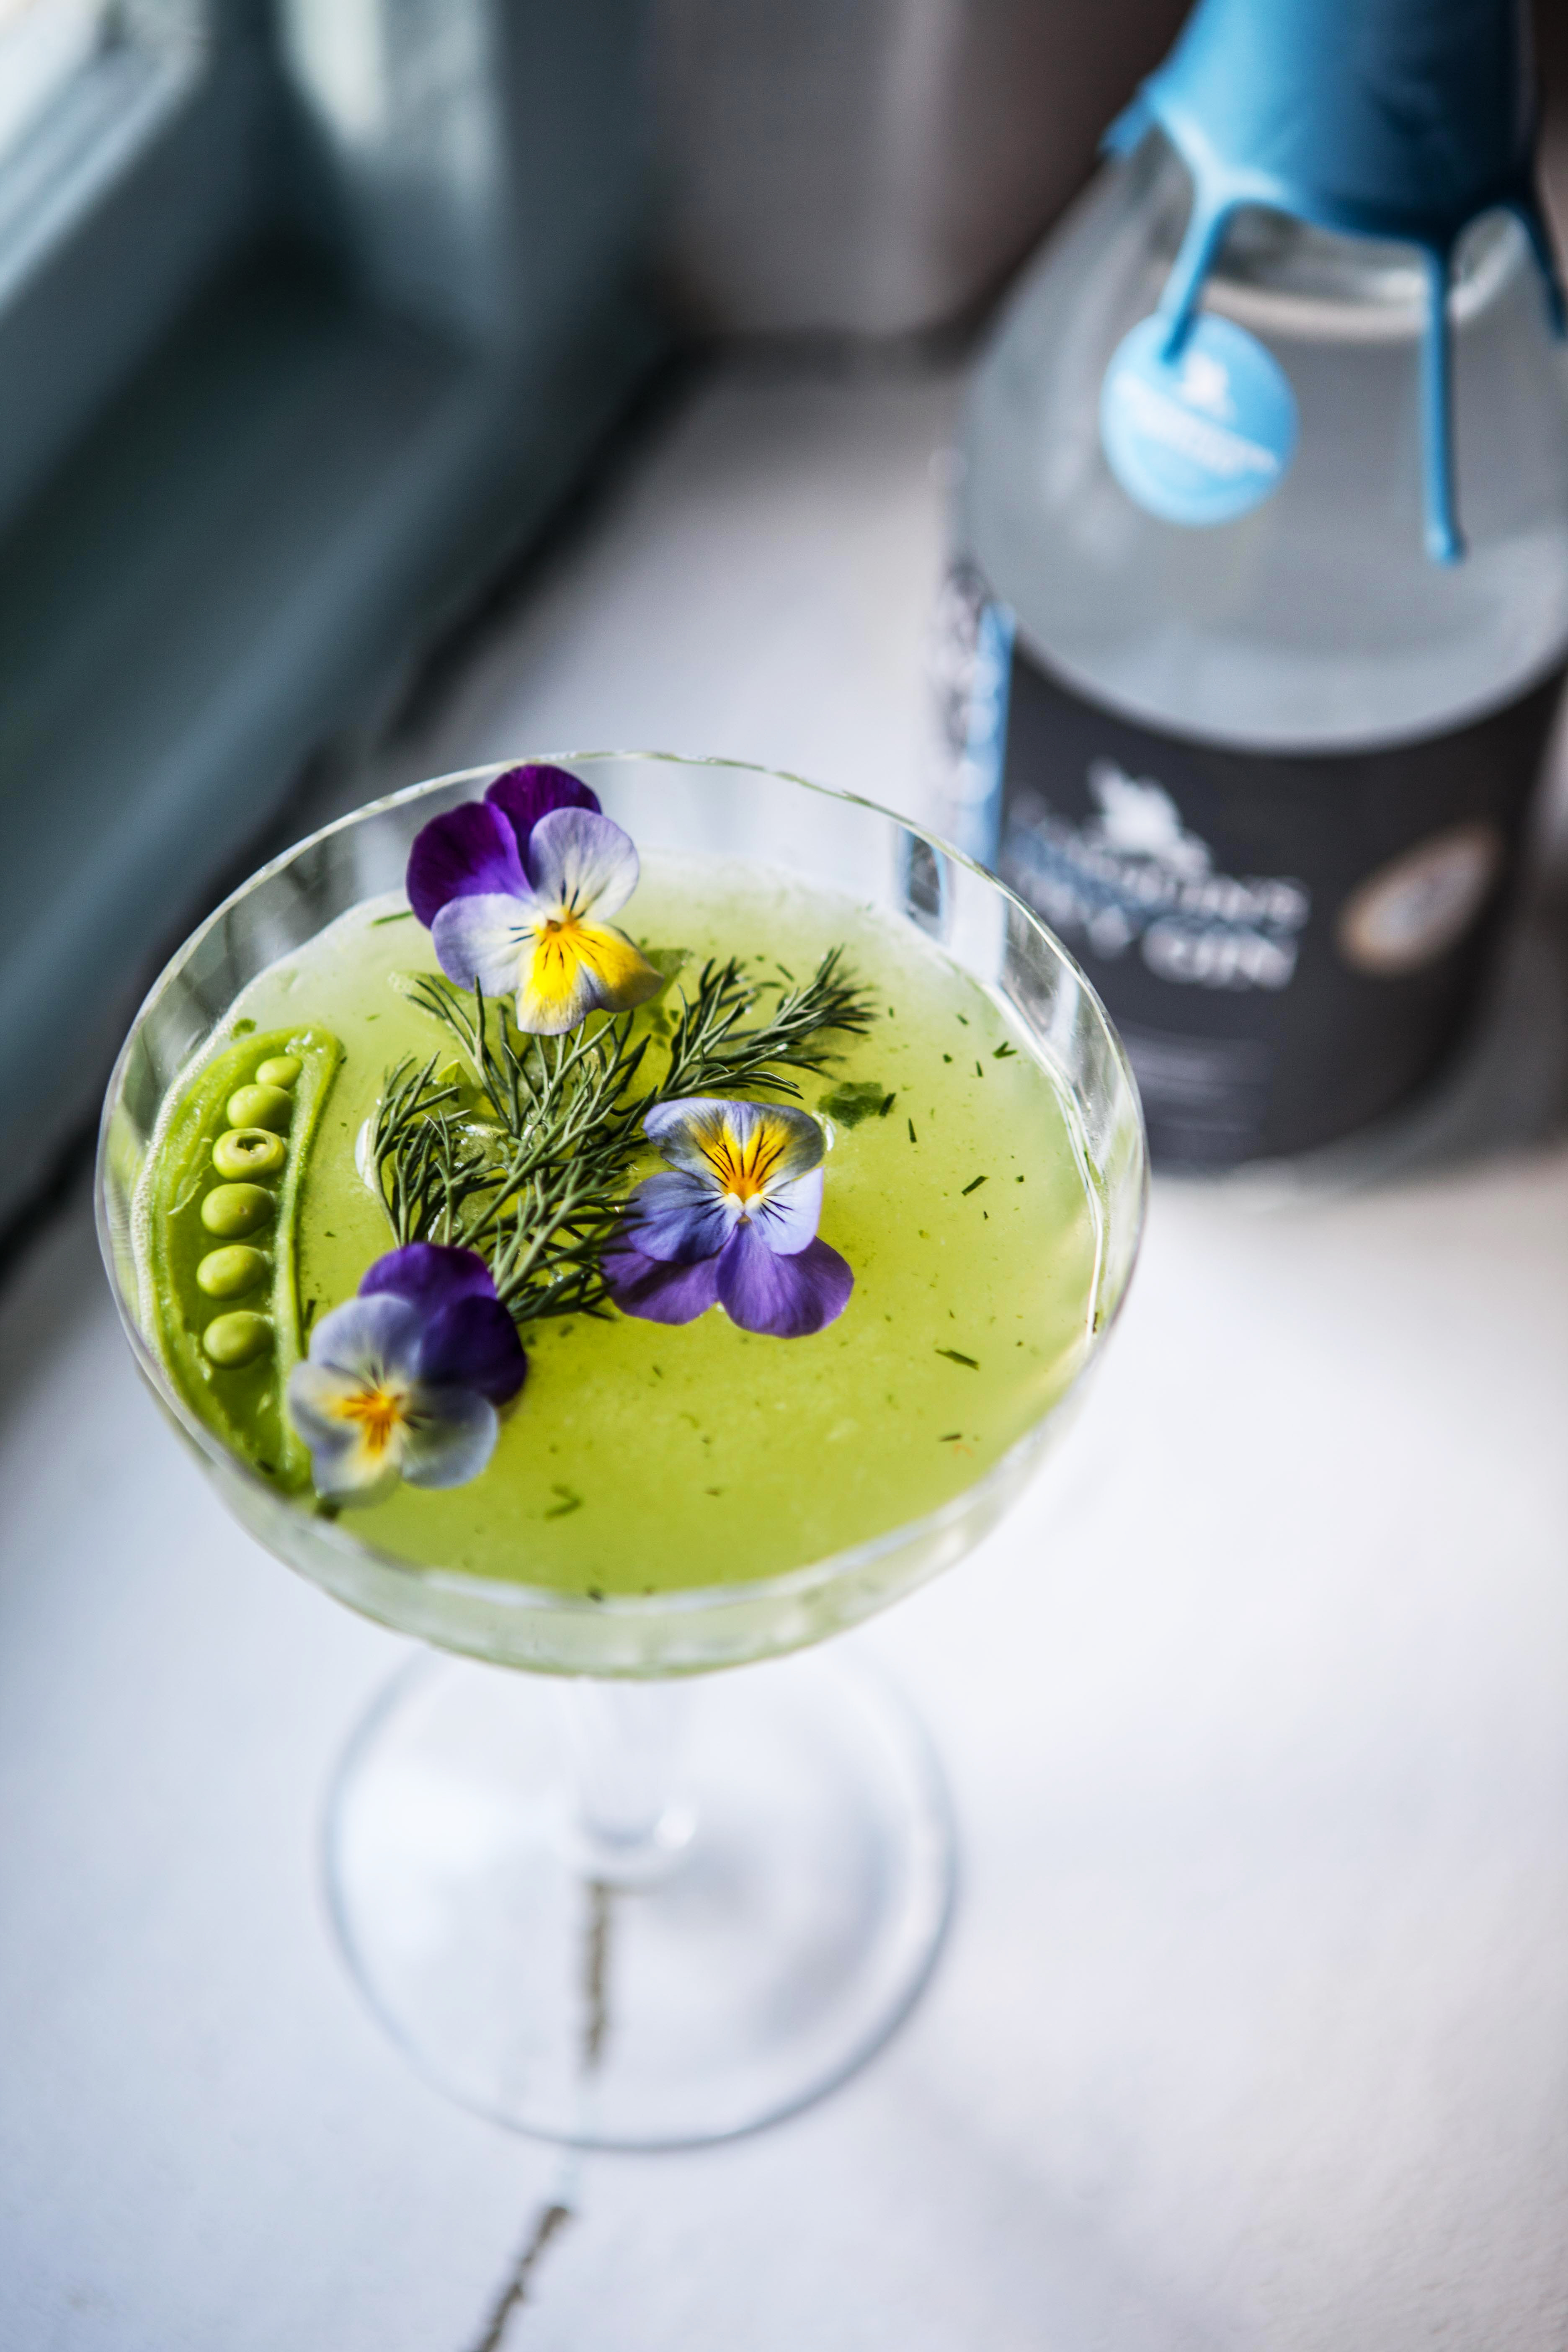 Tarquin's Dry Cocktails - Cornish Garden smash